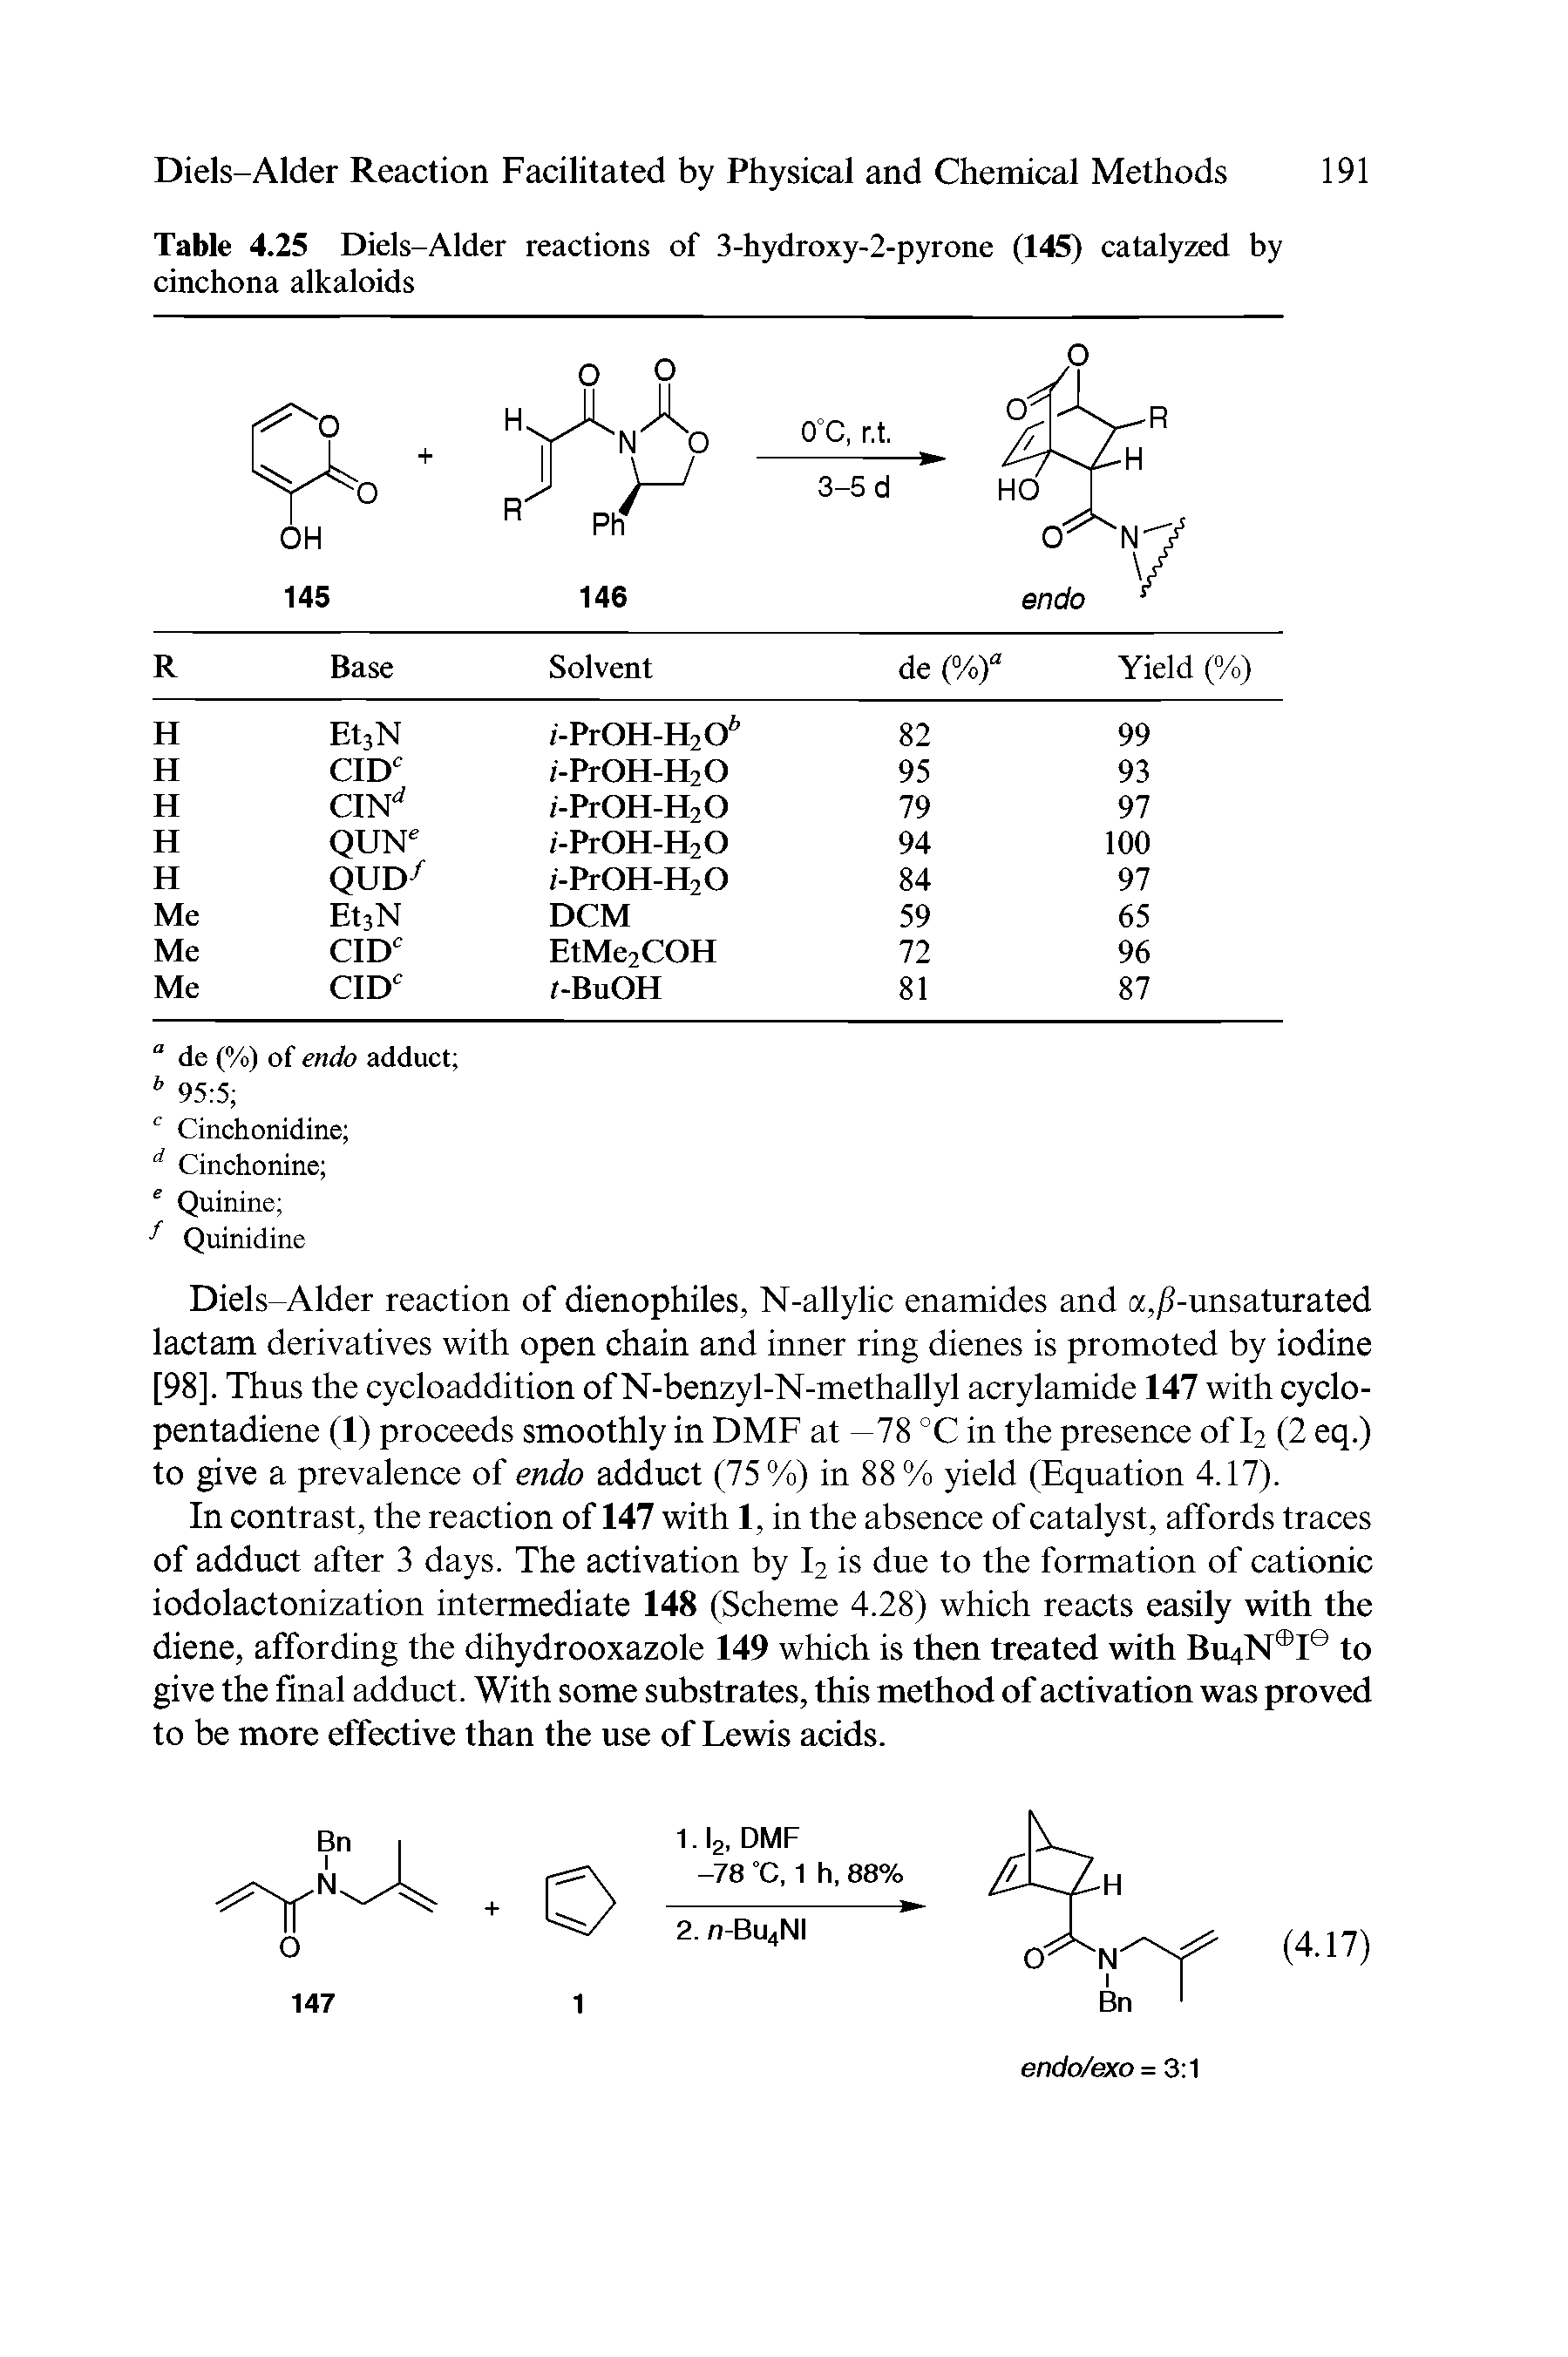 "Table 4.25 <a href=""/info/diels_alder_reaction"">Diels-Alder reactions</a> of 3-hydroxy-2-pyrone (145) catalyzed by cinchona alkaloids"